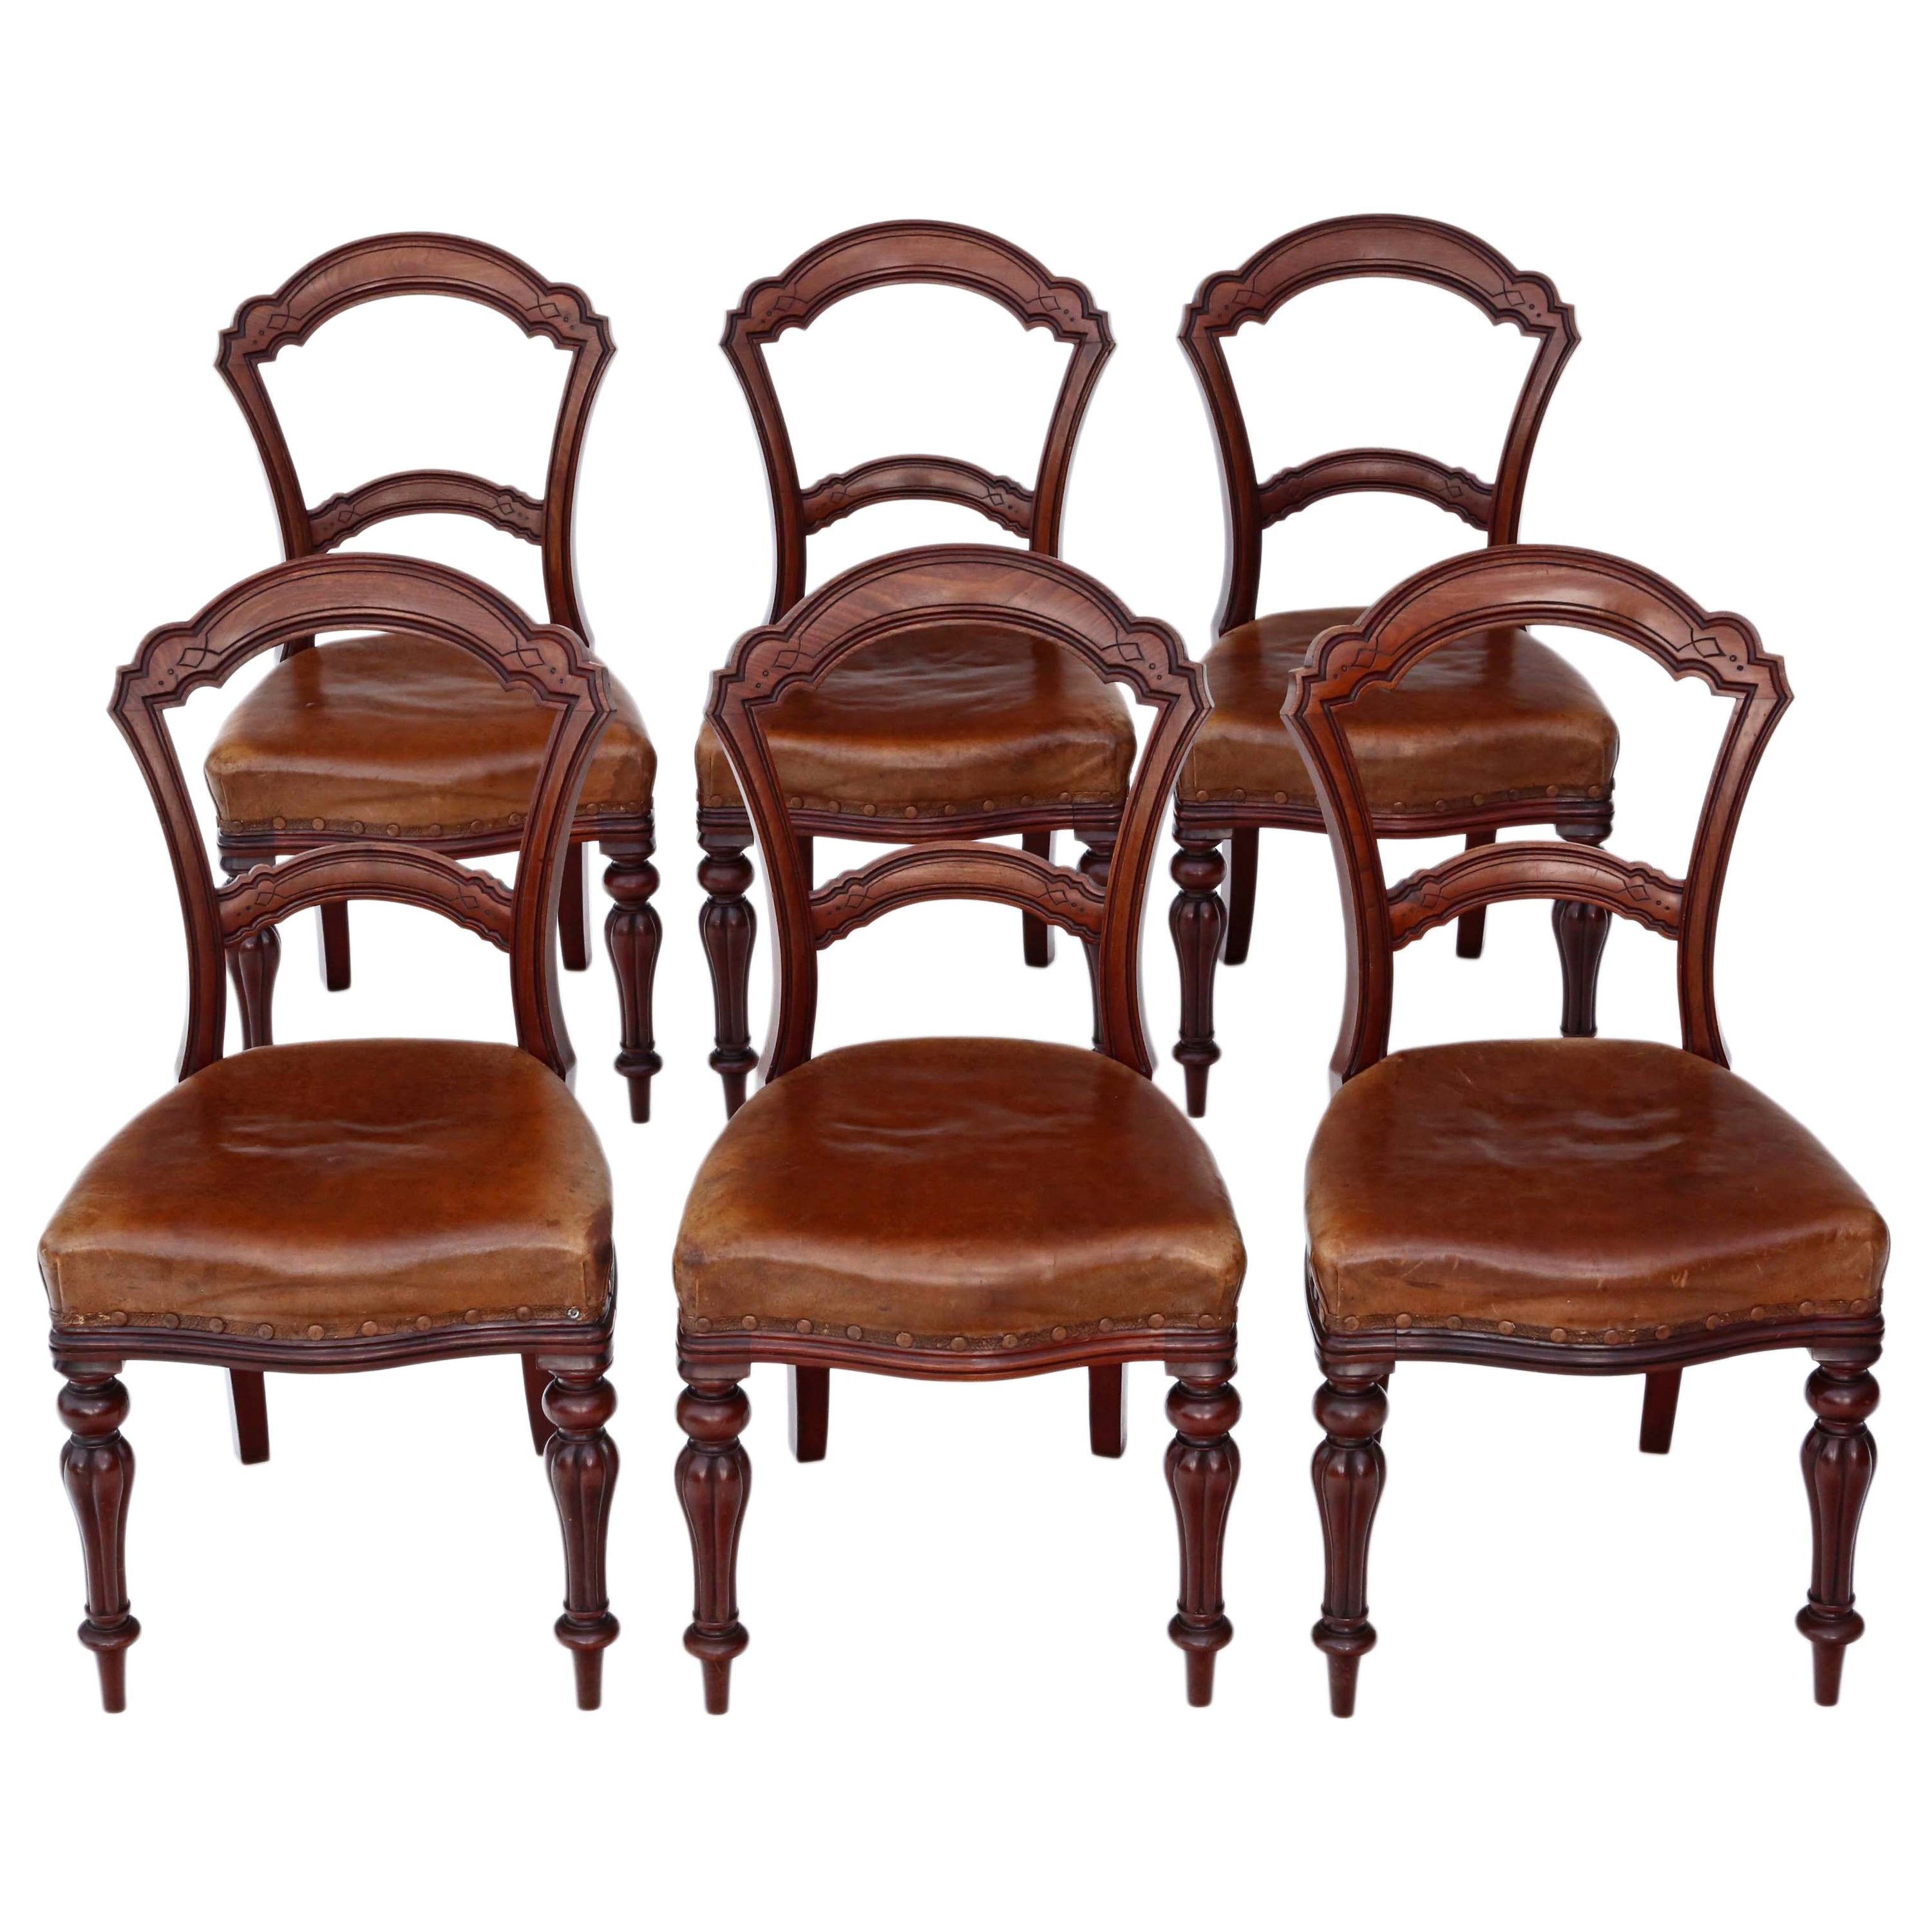 Set of 6 Victorian Walnut Leather Balloon Back Dining Chairs